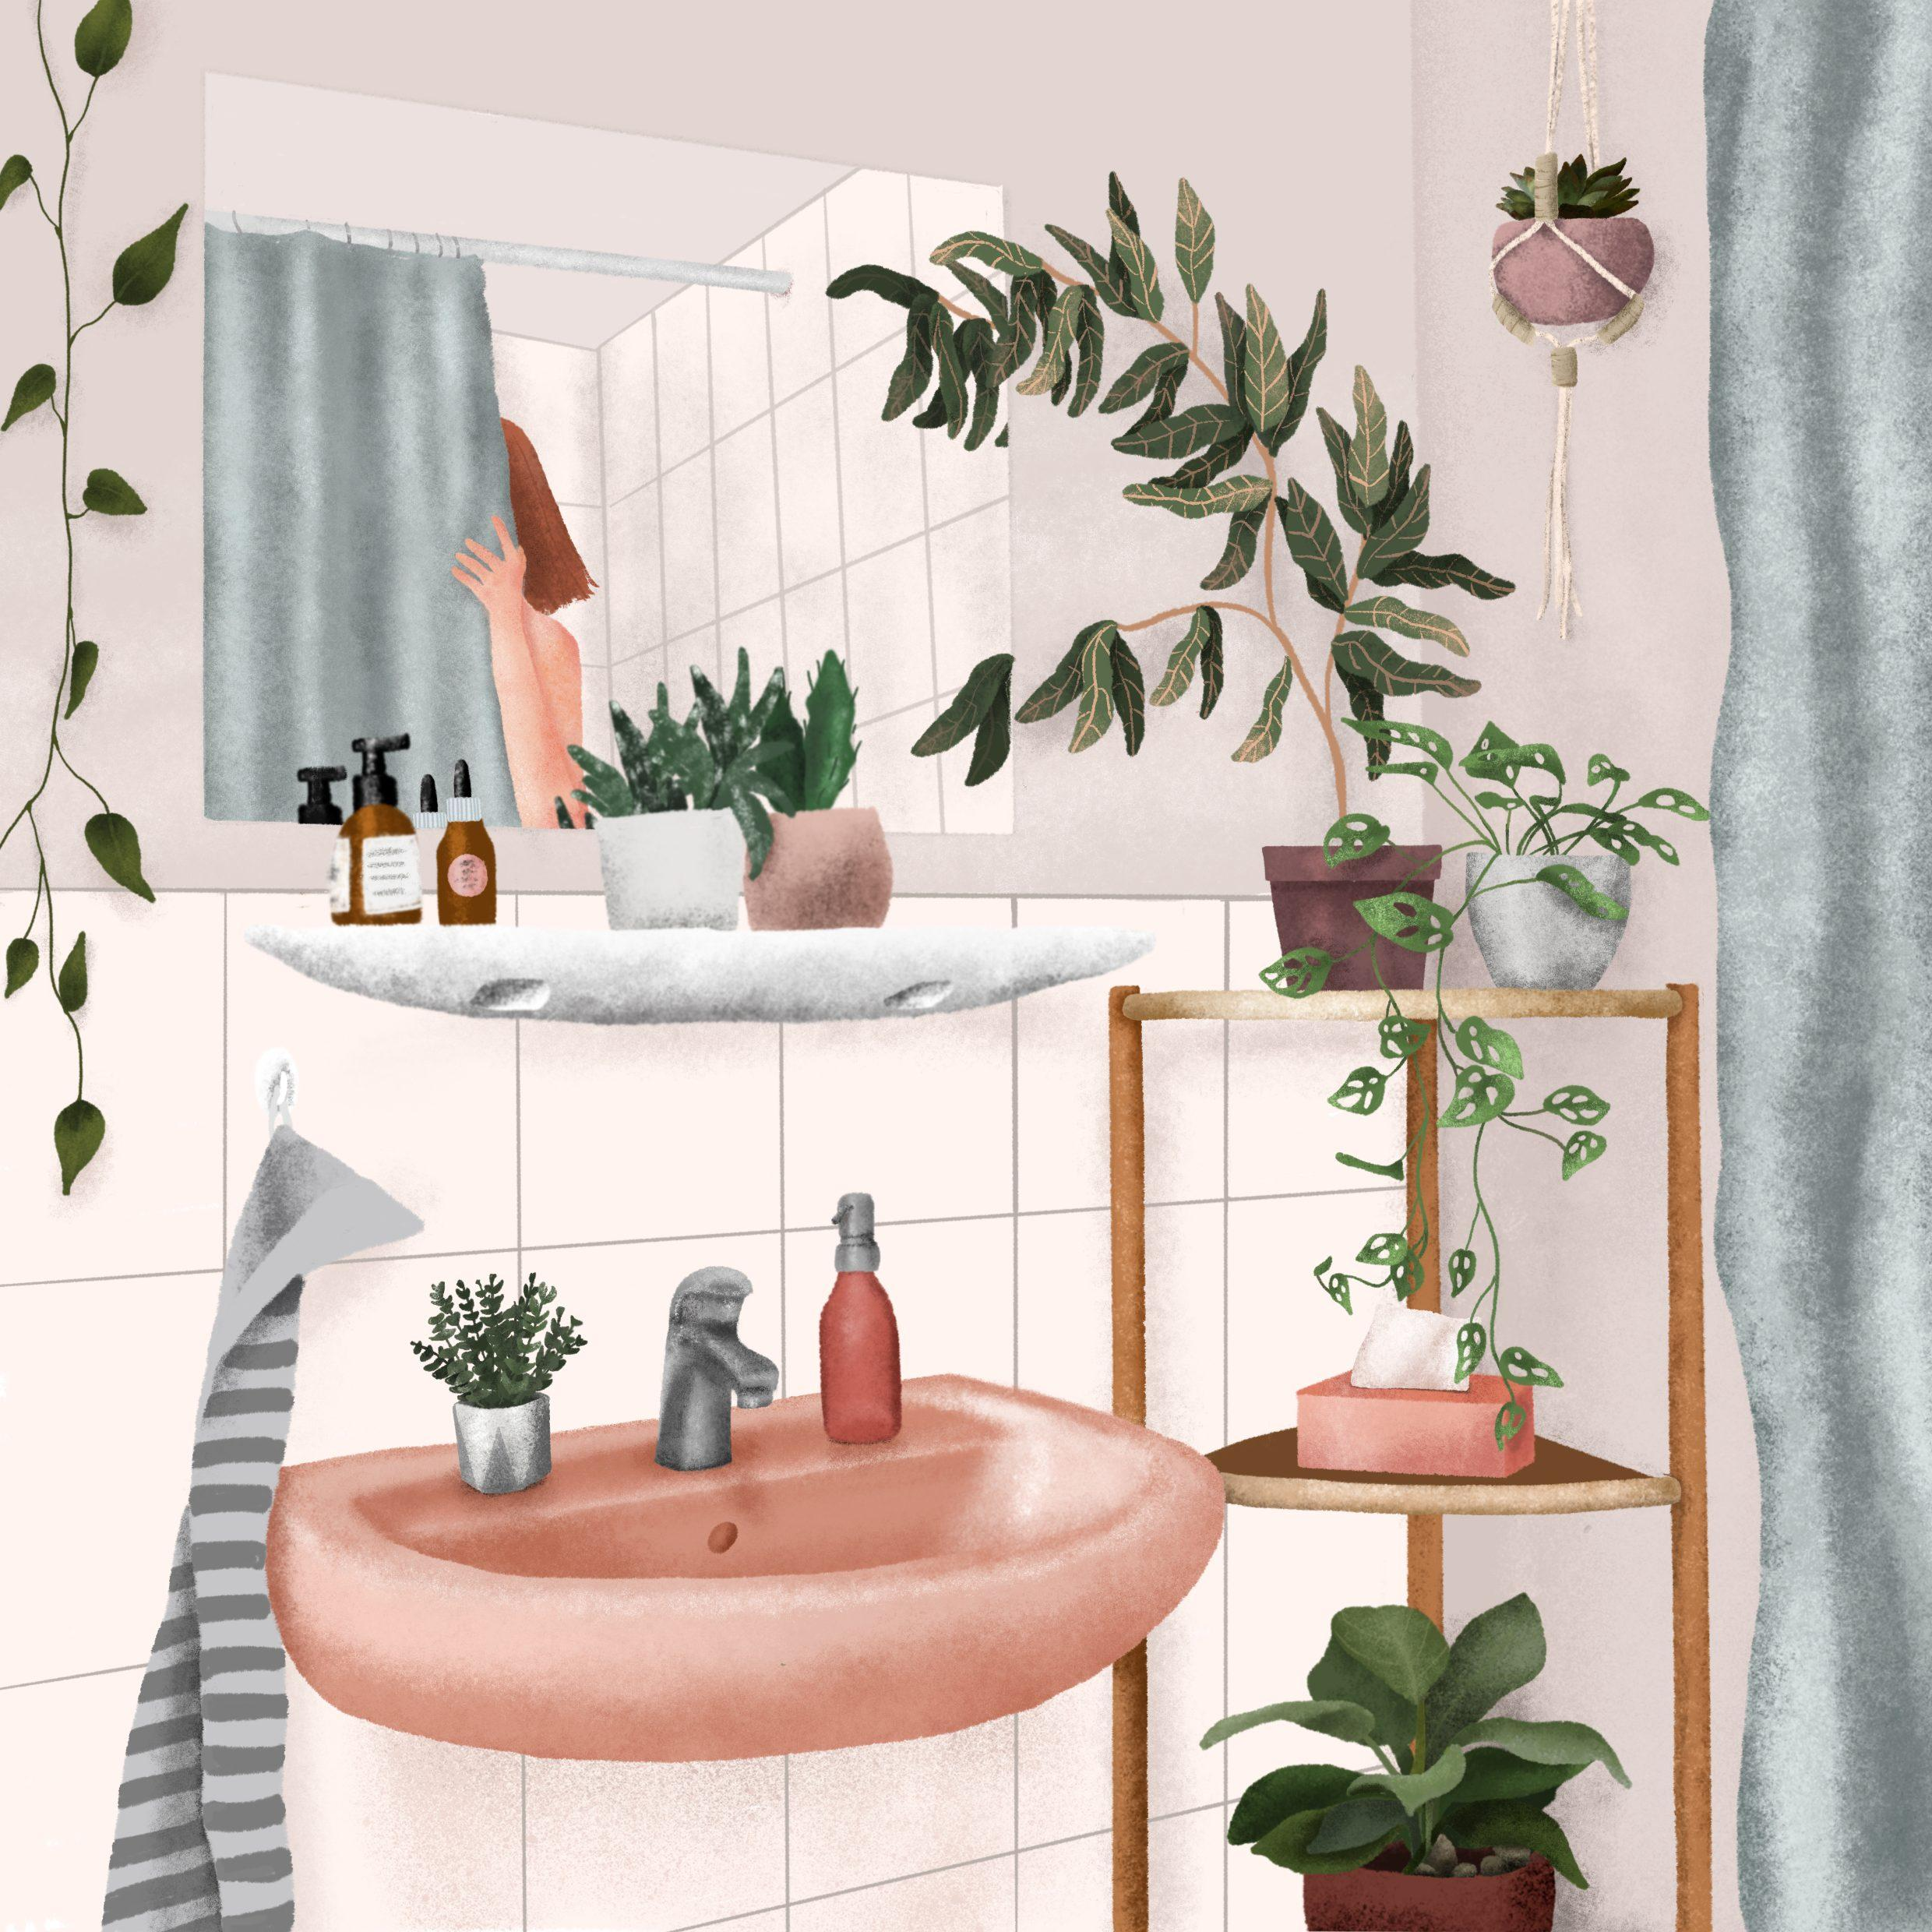 Beautyday :) #badezimmer #deko #bathroom #bad #illus...